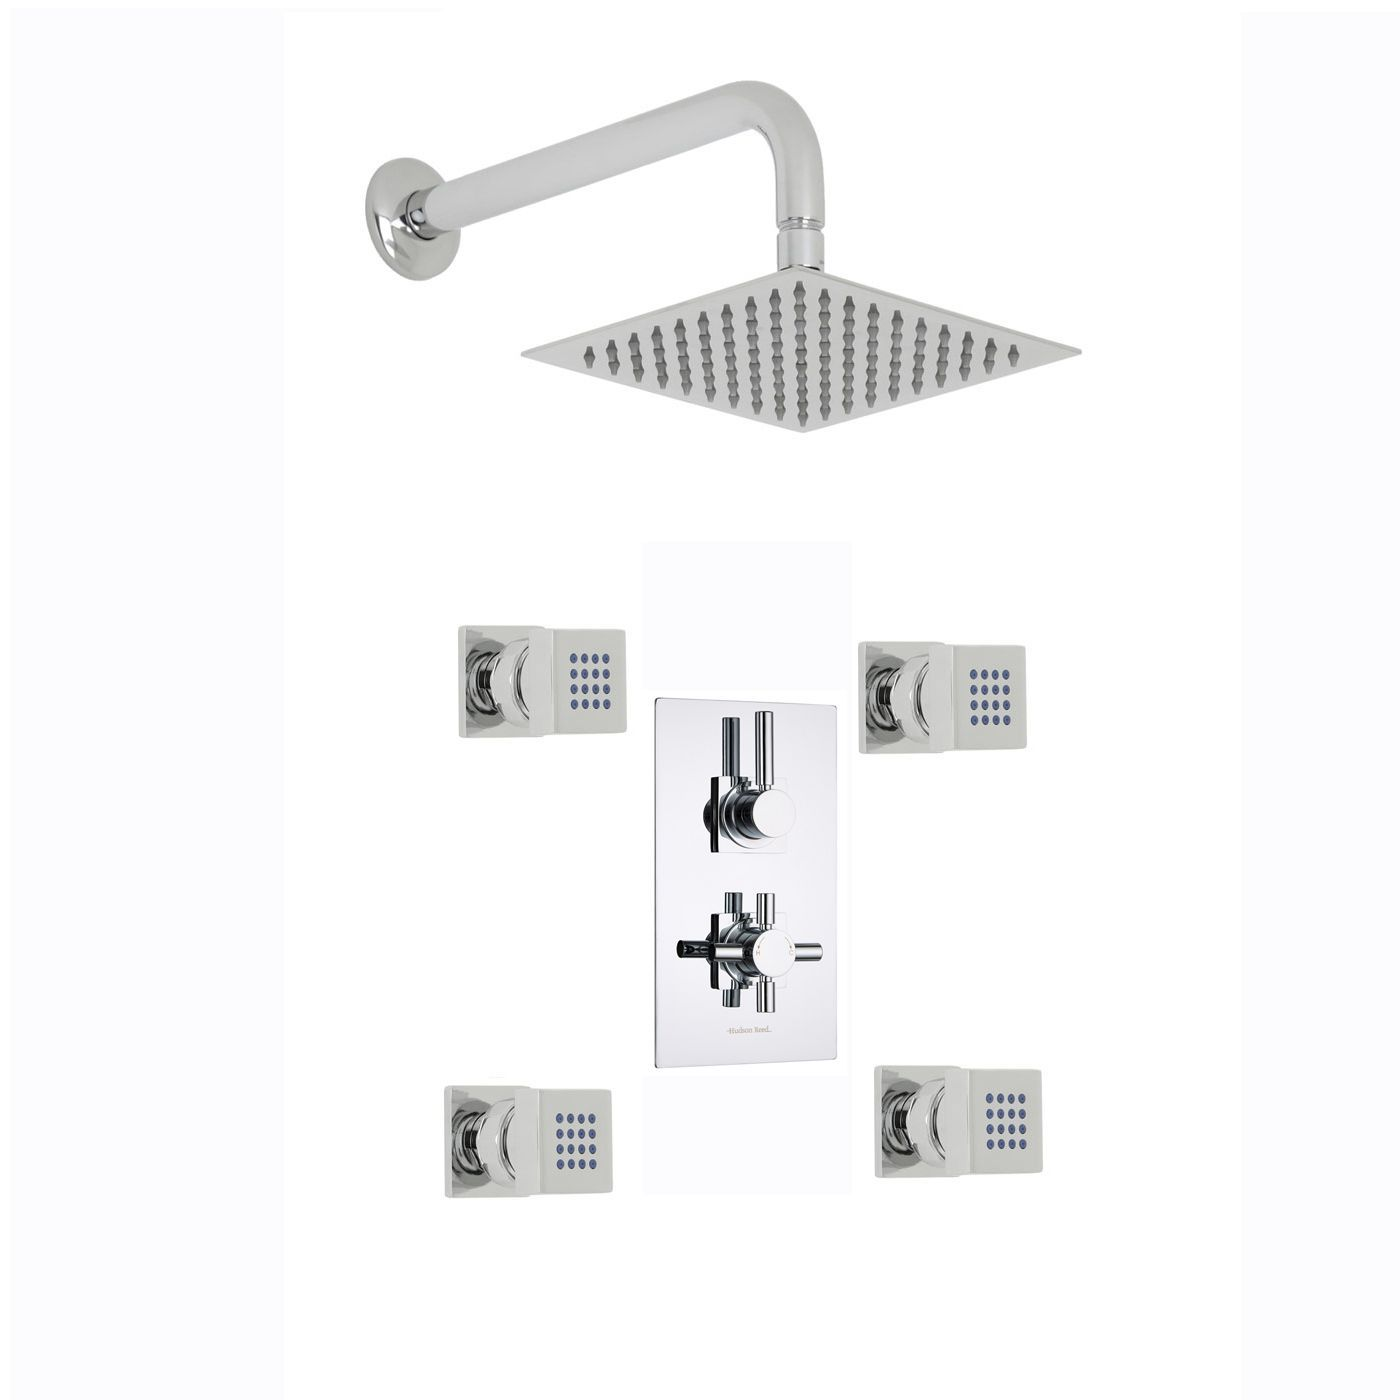 "Tec Thermostatic 2 Outlet Shower System with 8"" Square Head & Wall Arm & 4 Square Jet Sprays"